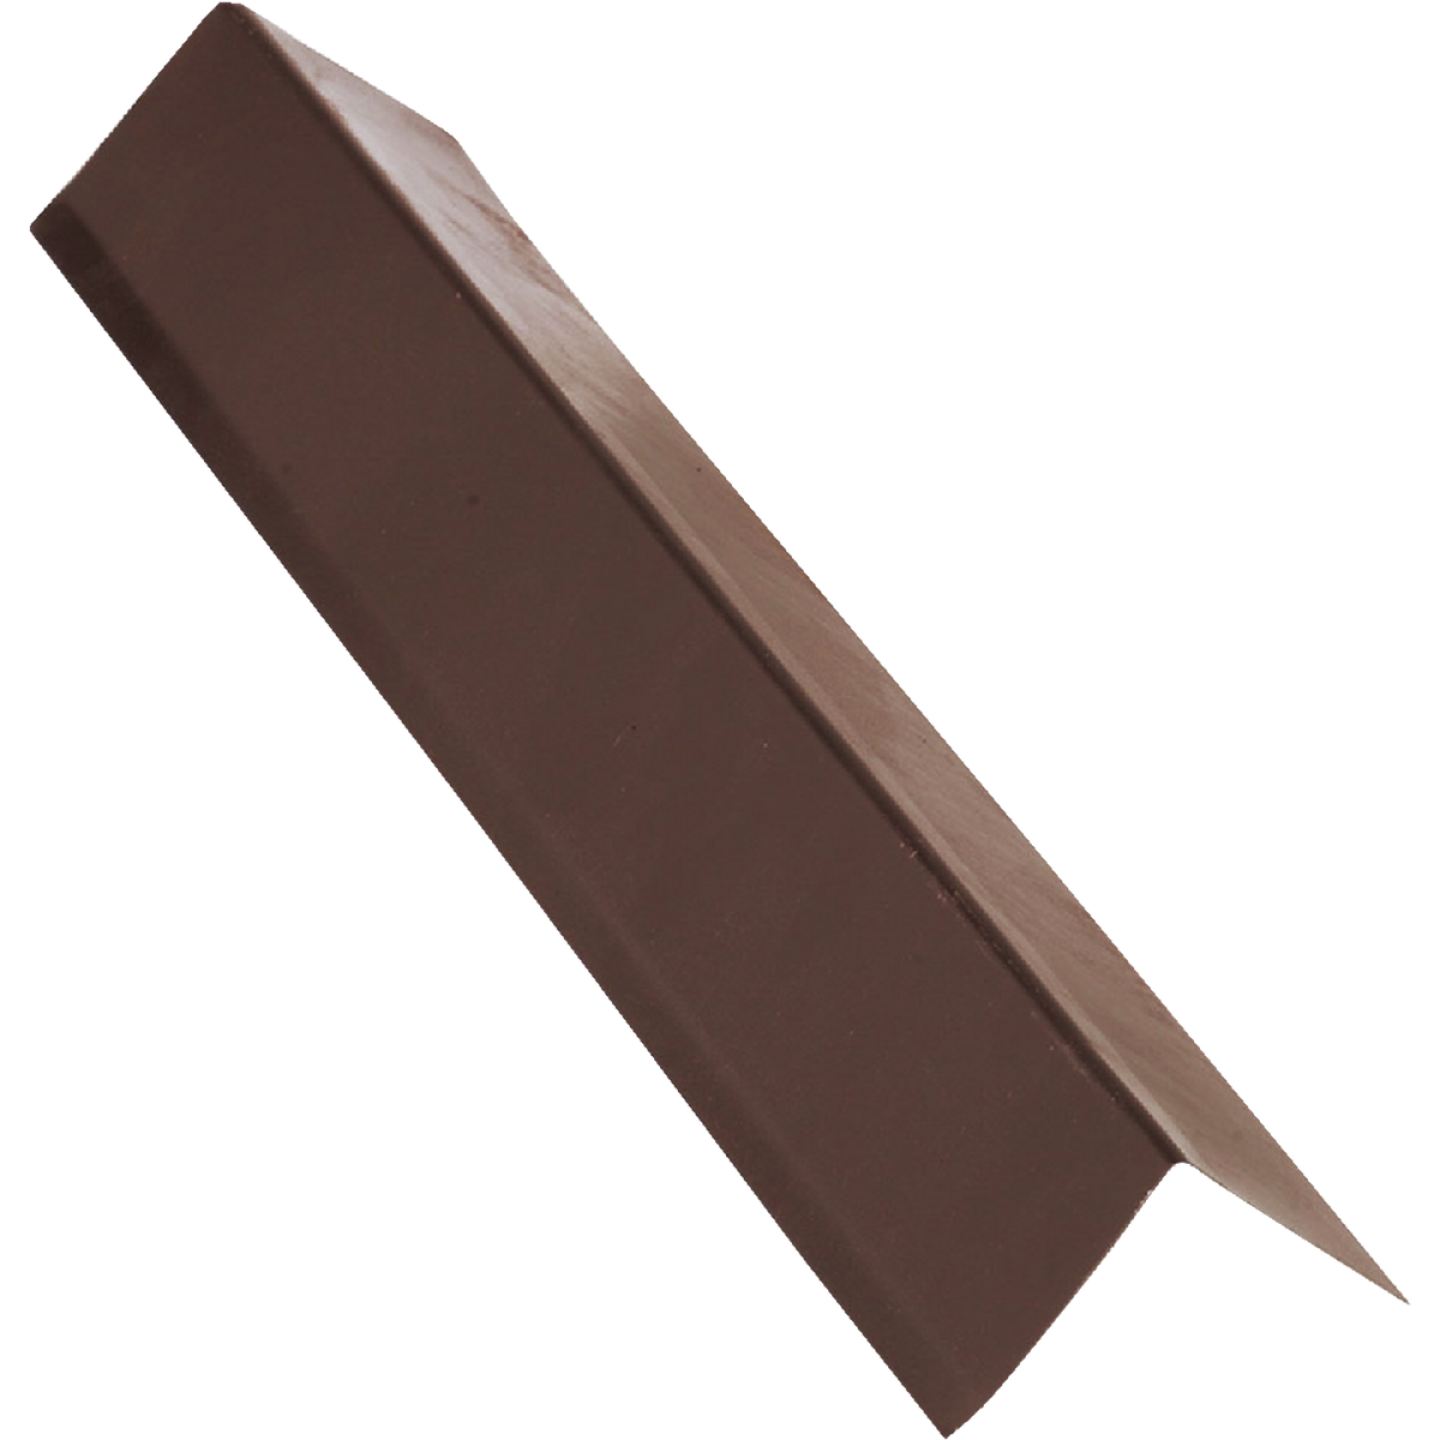 NorWesco A 1-1/2 In. X 1-1/2 In. Galvanized Steel Roof & Drip Edge Flashing, Brown Image 1